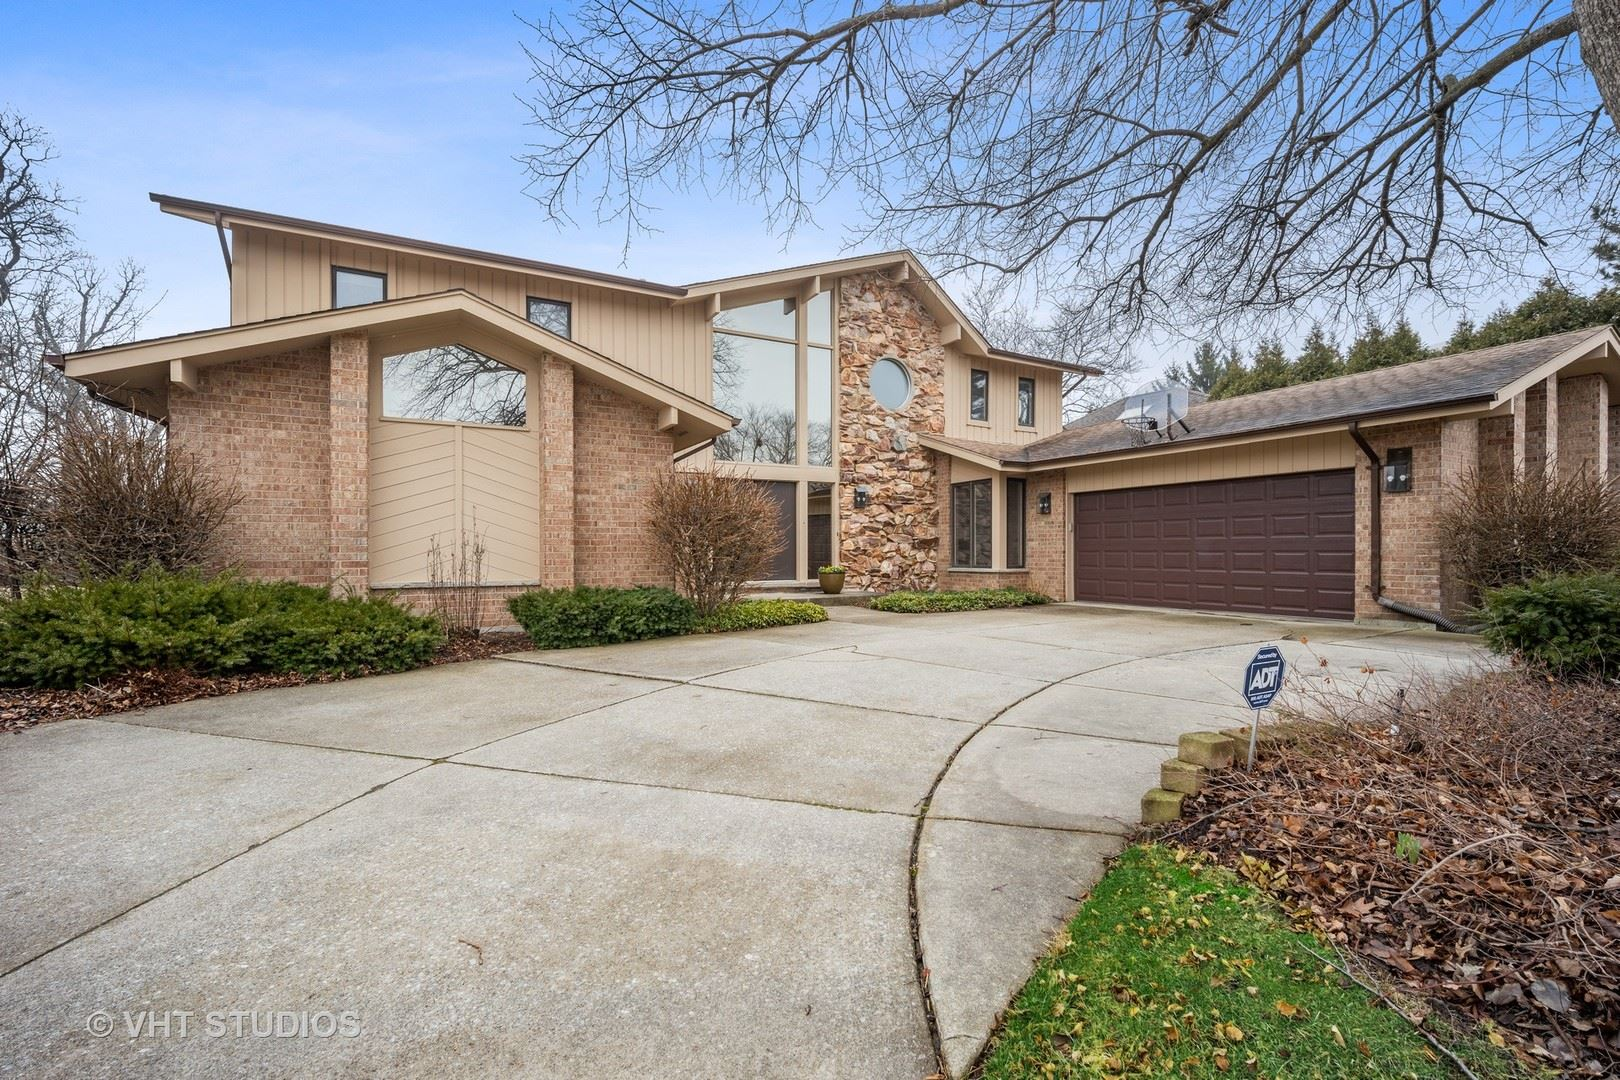 915 Bermuda Dunes Place, Northbrook, IL 60062 - #: 10673449